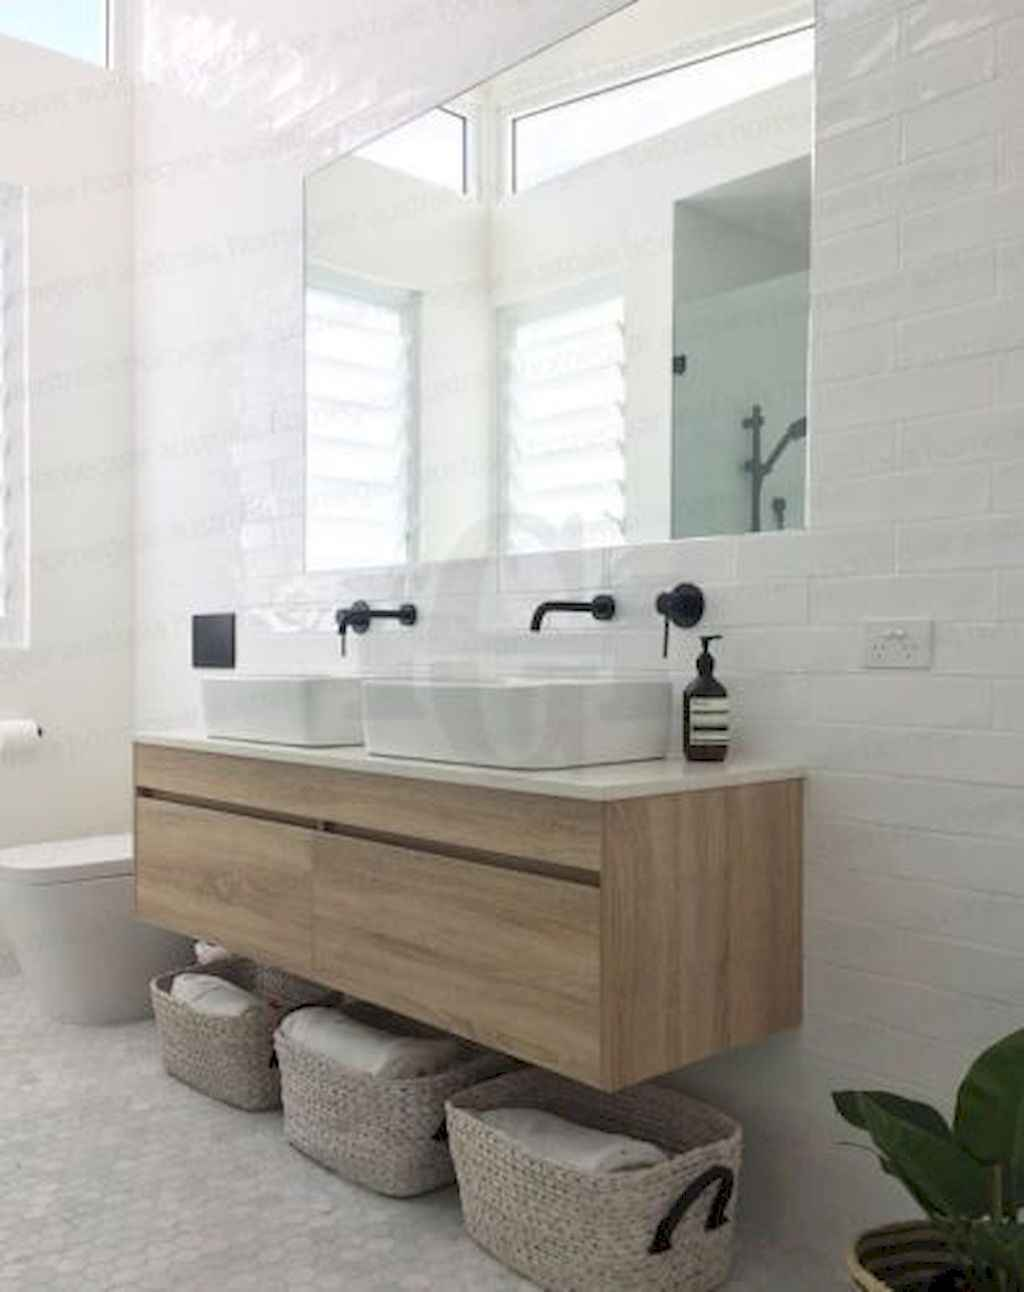 111 awesome small bathroom remodel ideas on a budget (72)